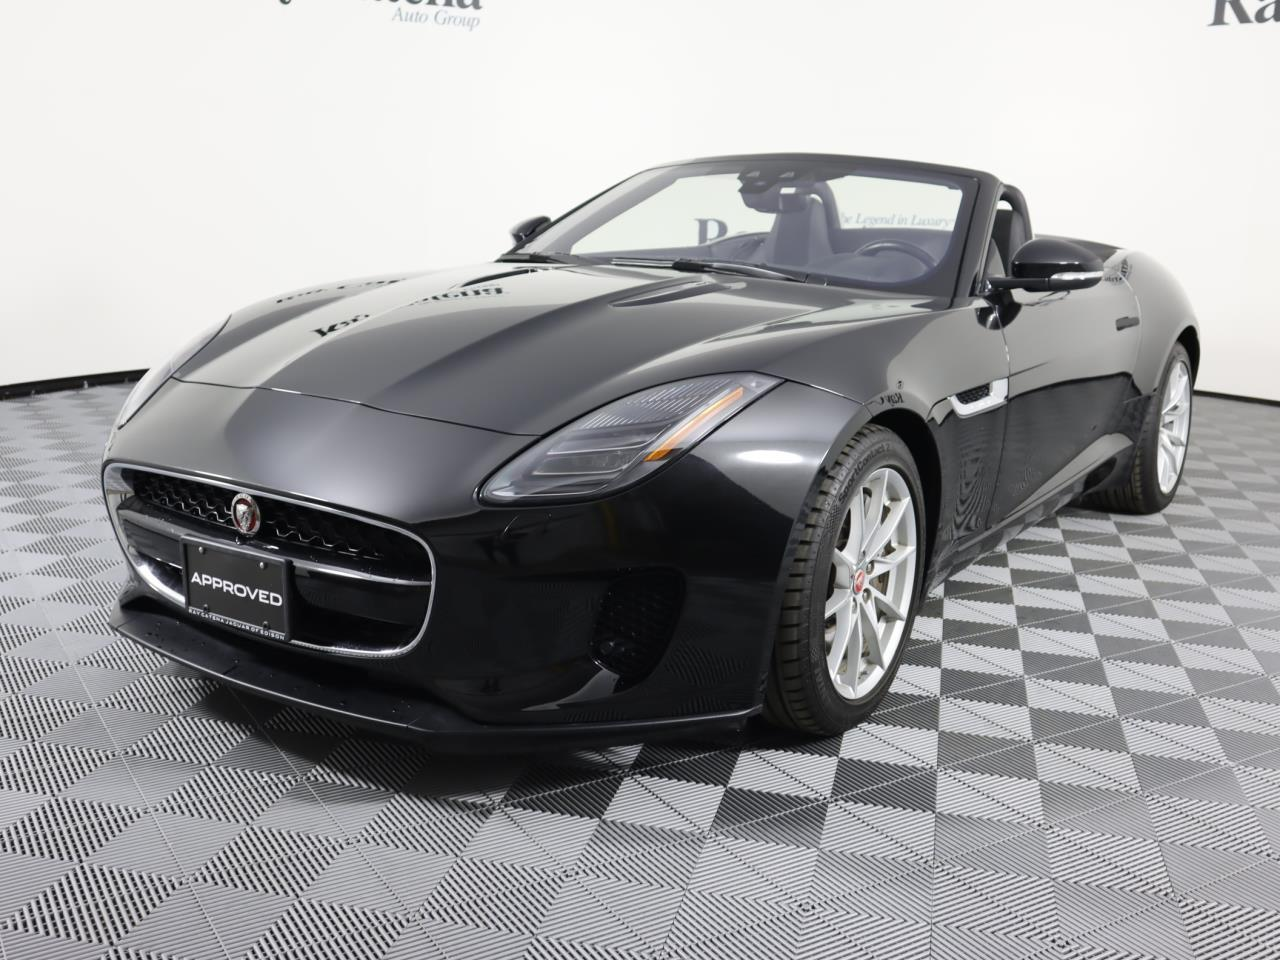 Certified Pre-Owned 2018 Jaguar F-TYPE Convertible Auto 296HP